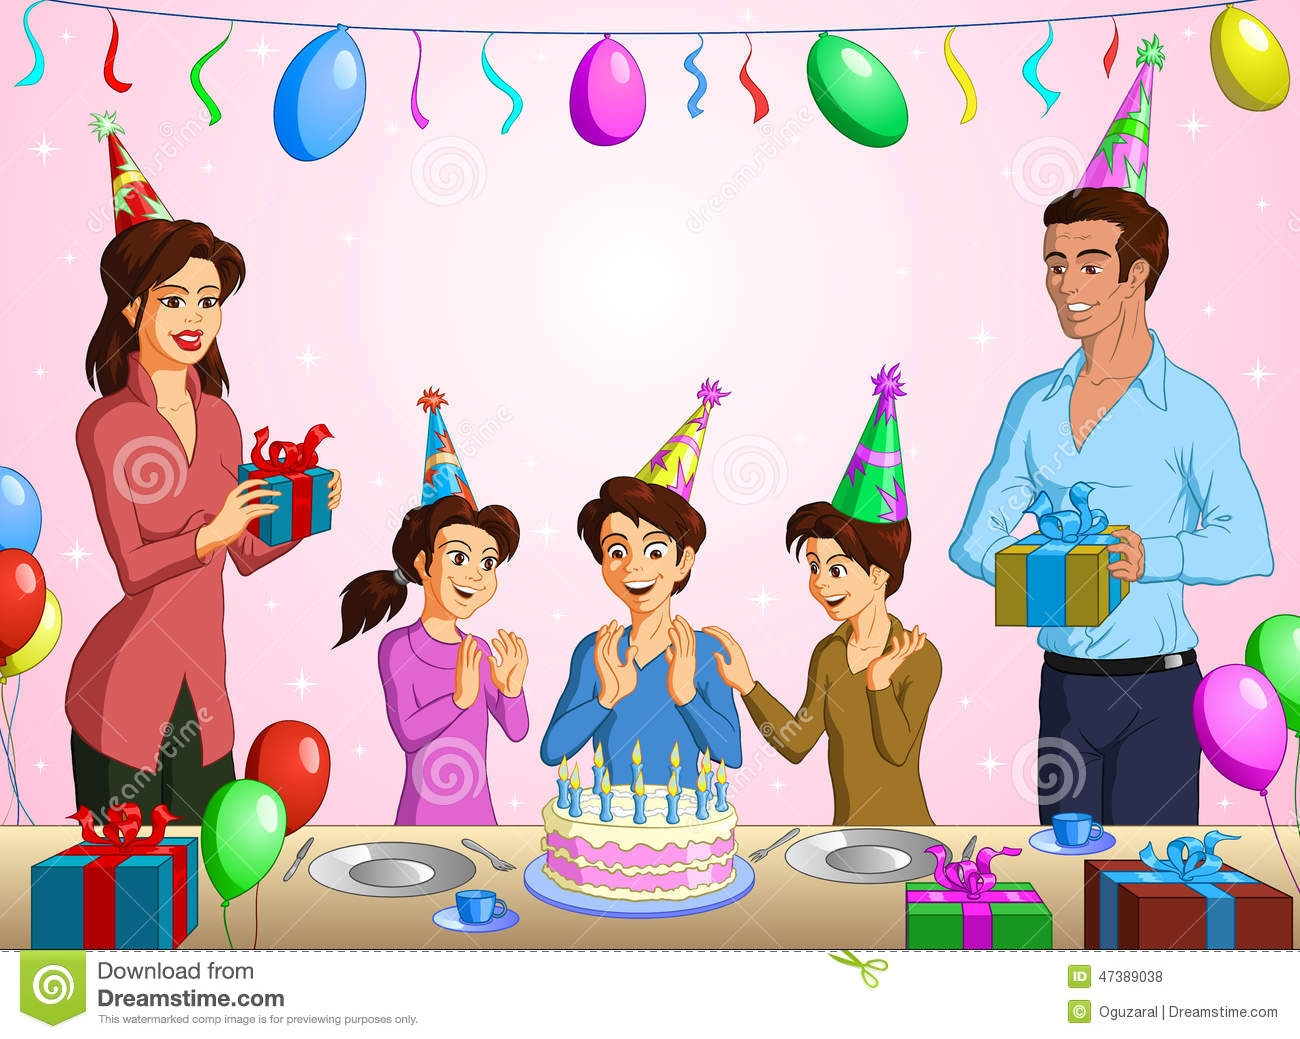 Family birthday party clipart.